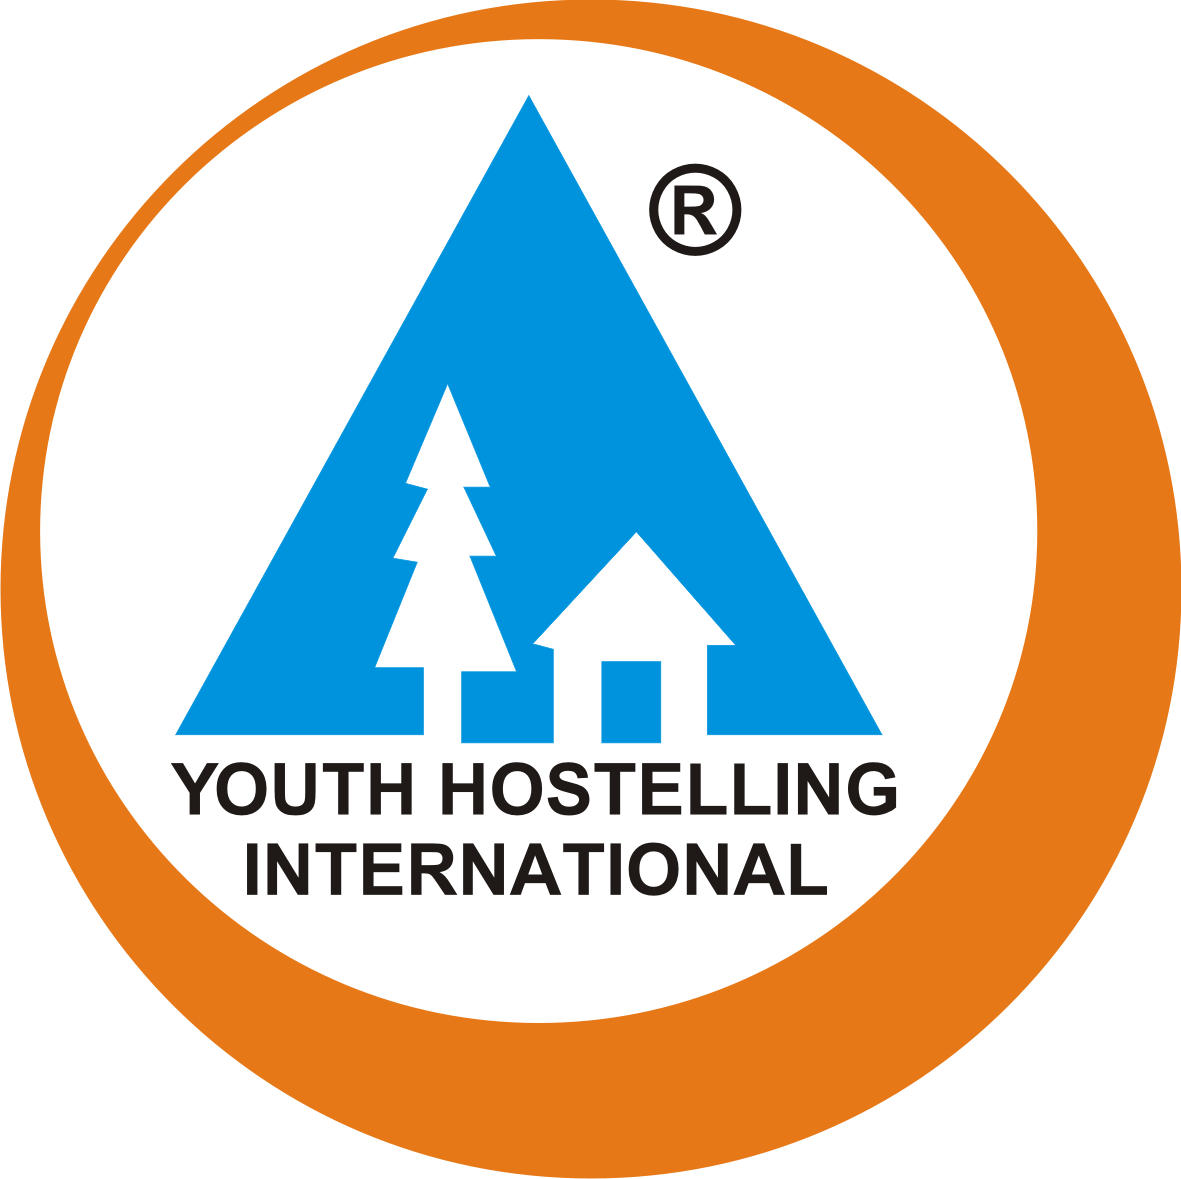 Hostel International